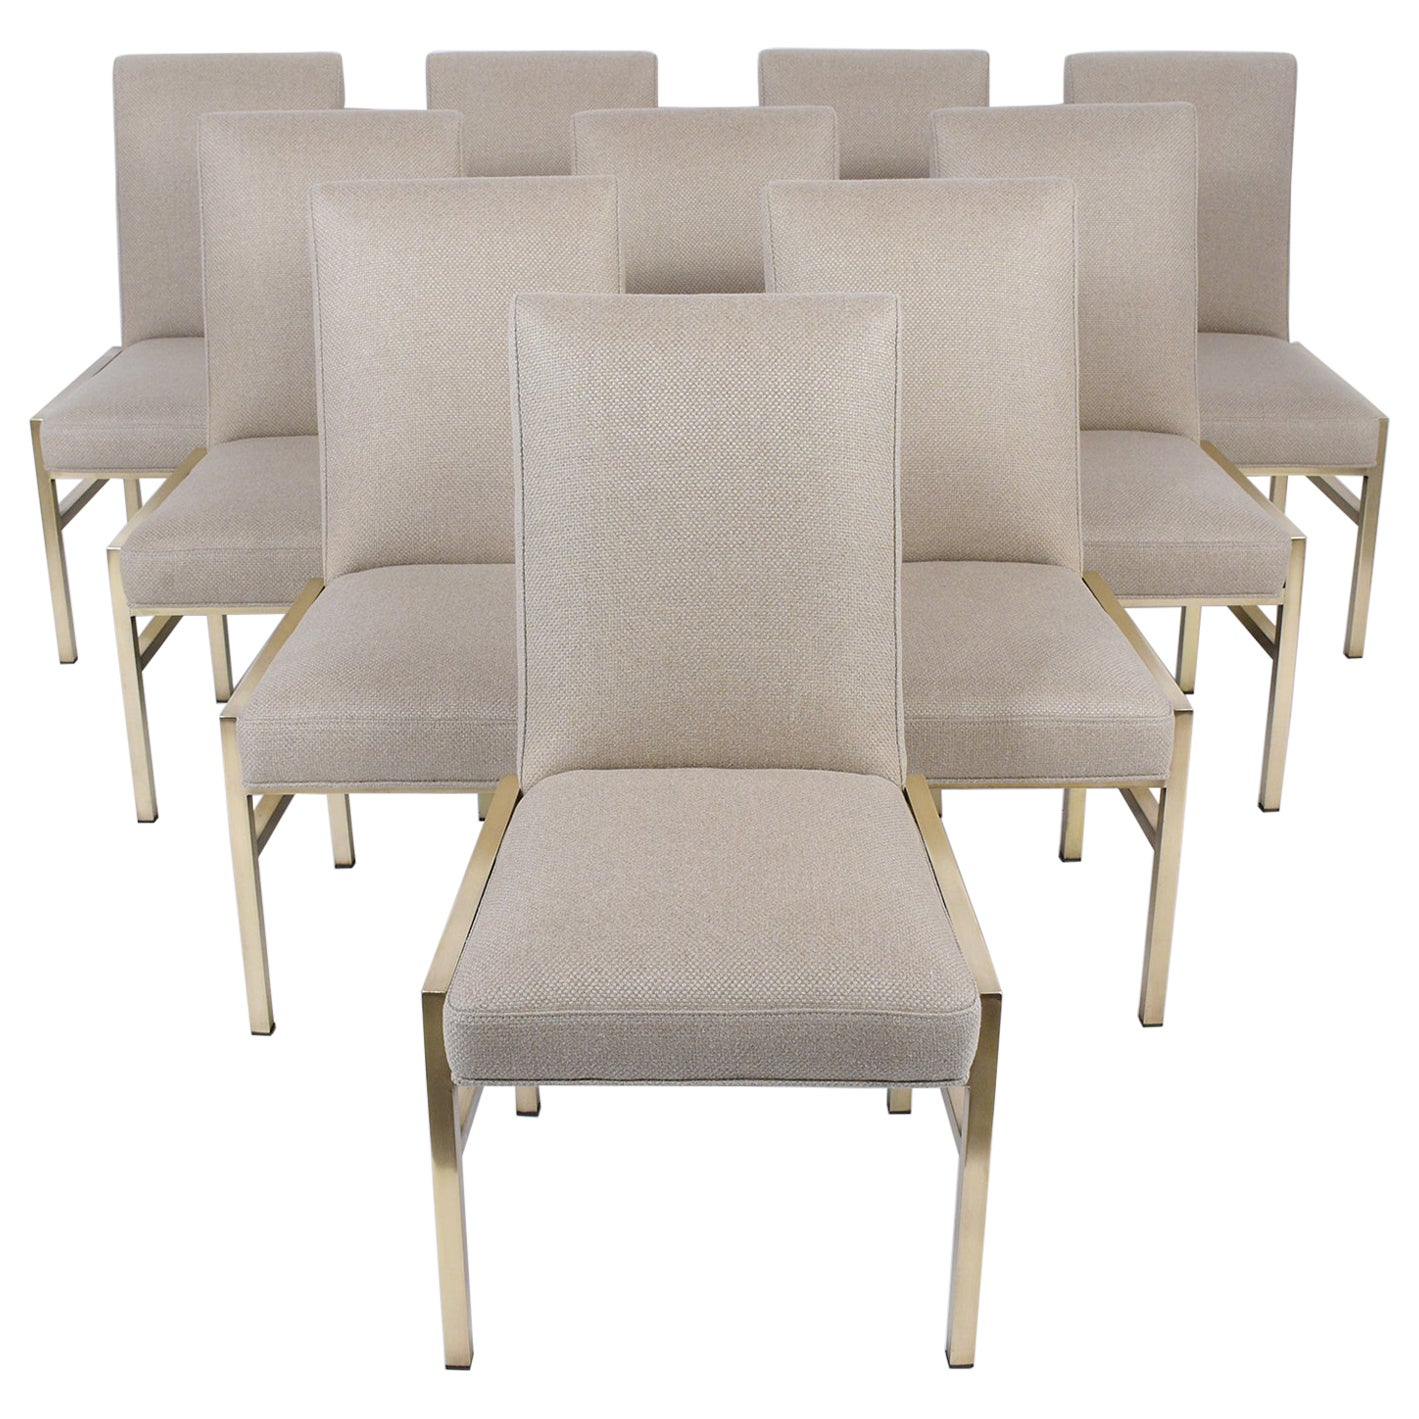 Set of Ten Midcentury Dining Chairs